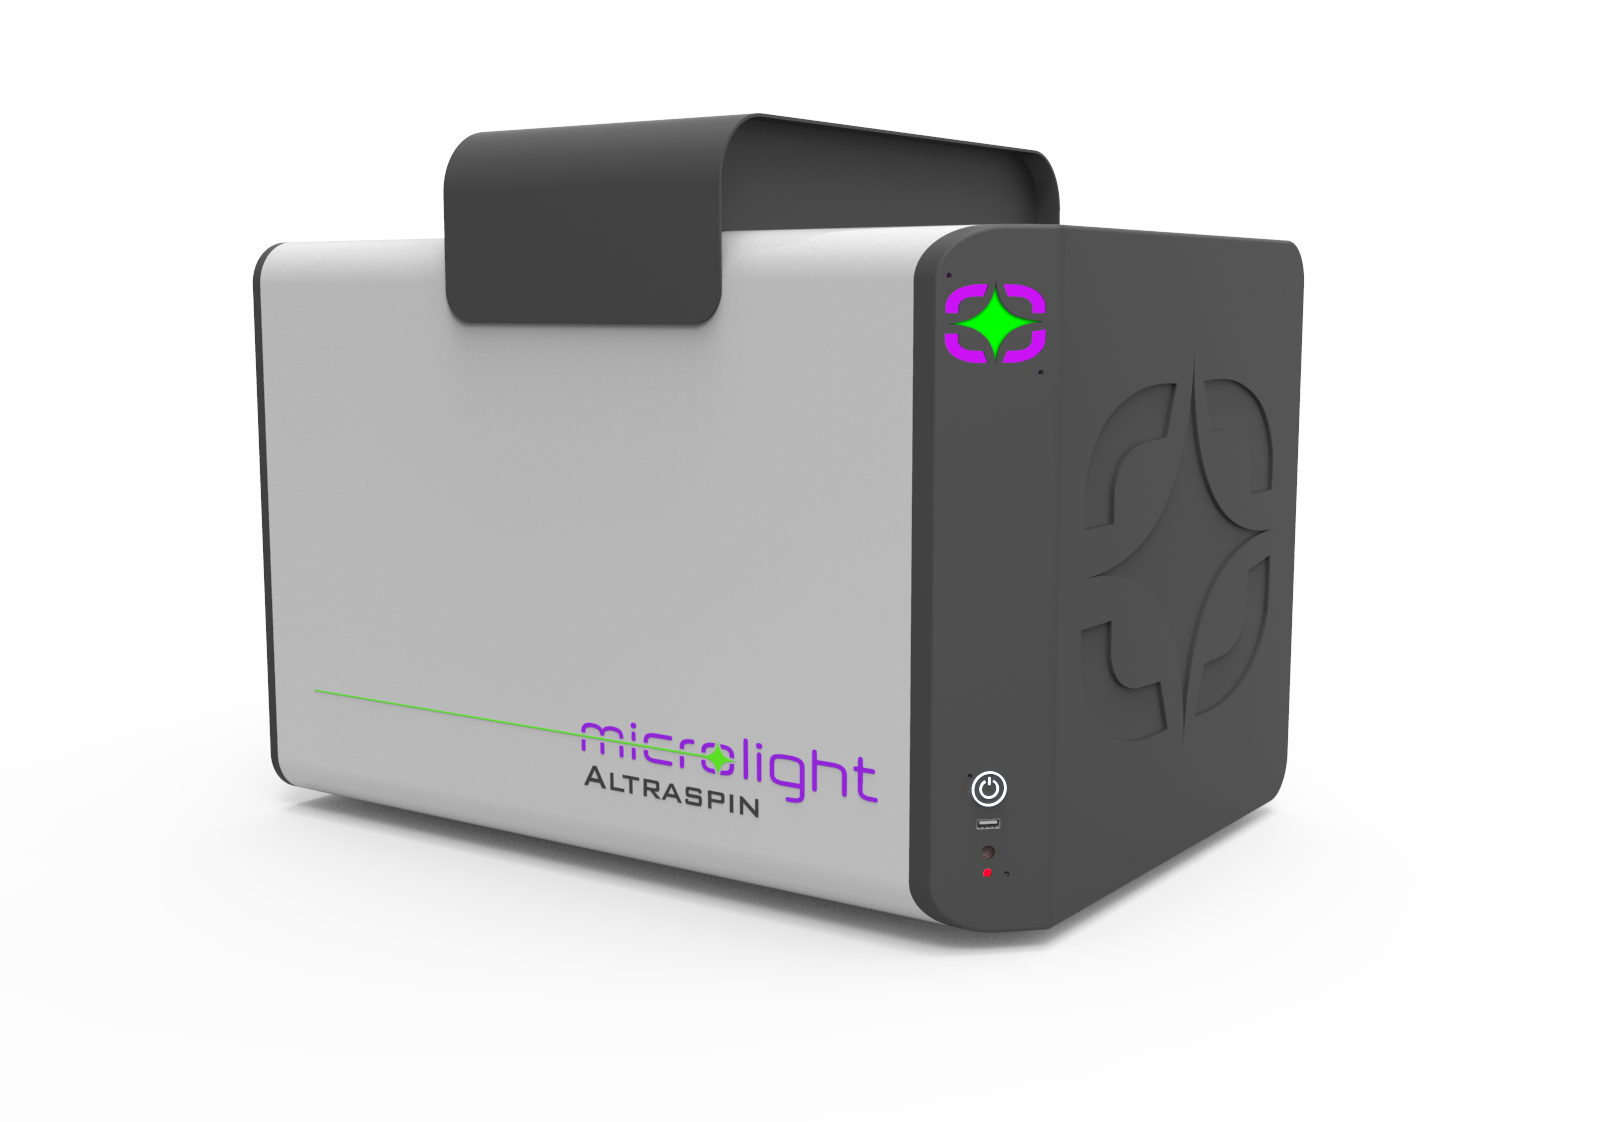 The Microlight3D Altraspin 3D printer. Image via Microlight3D